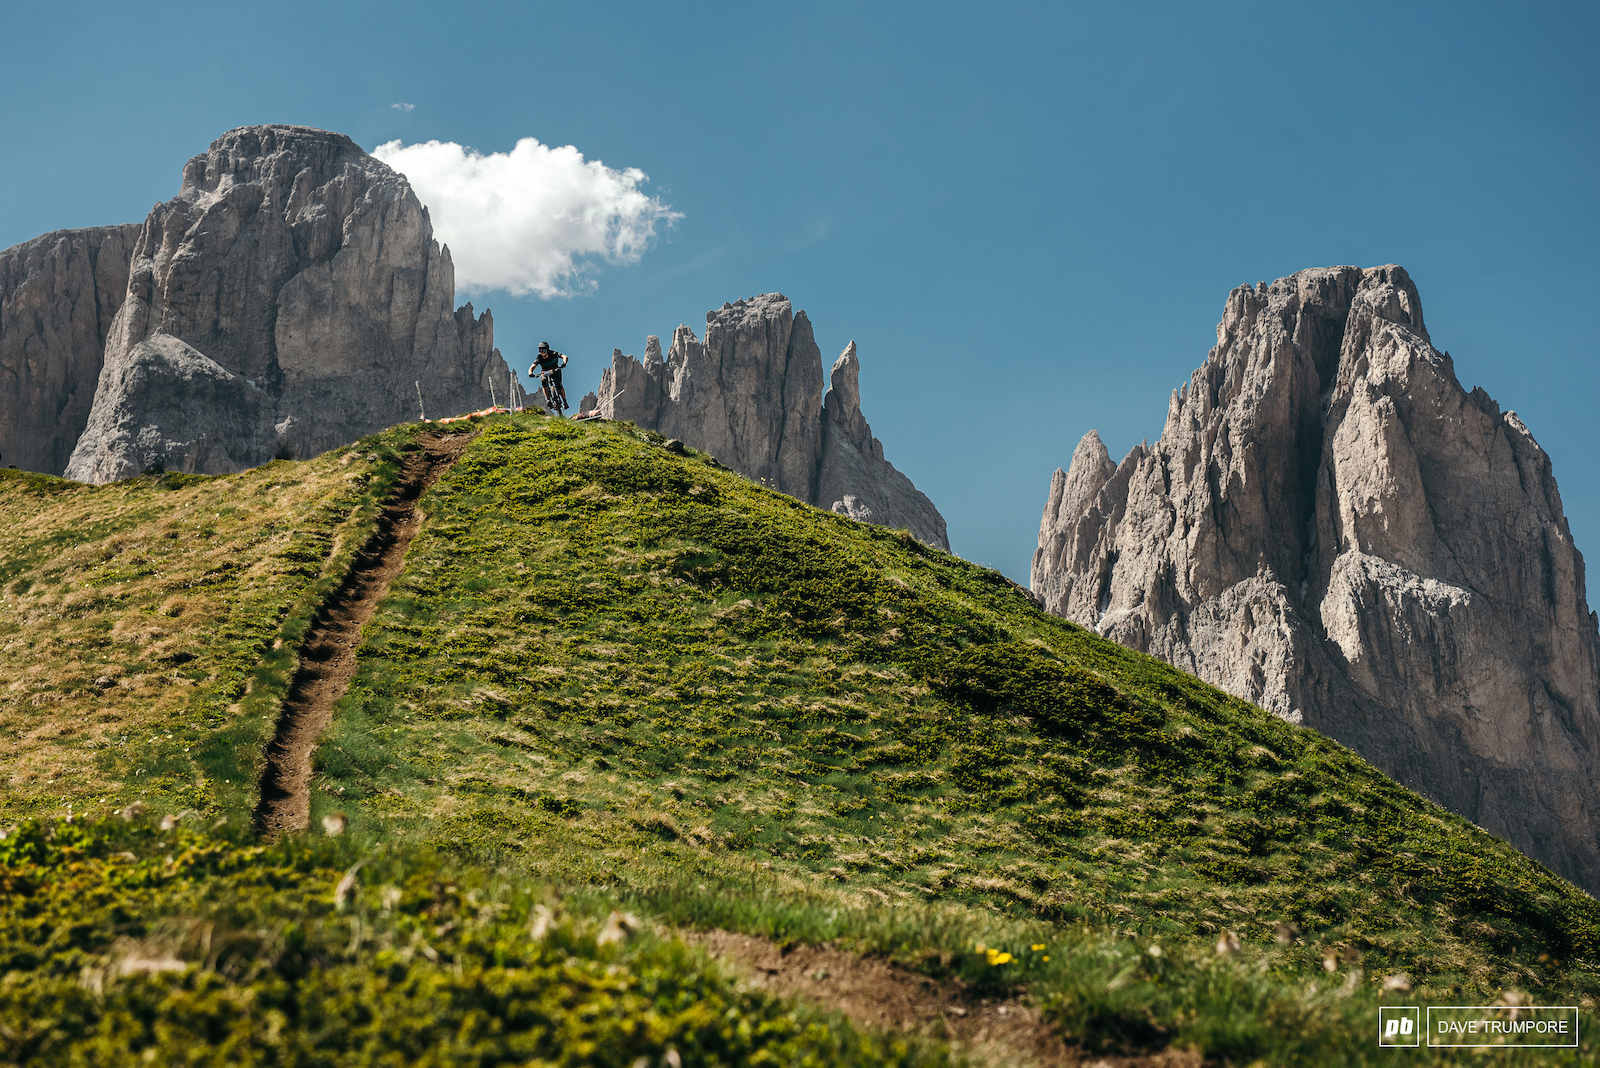 Eduro World Series director Chris Ball drops into Stage 5 below the iconic Dolomites.